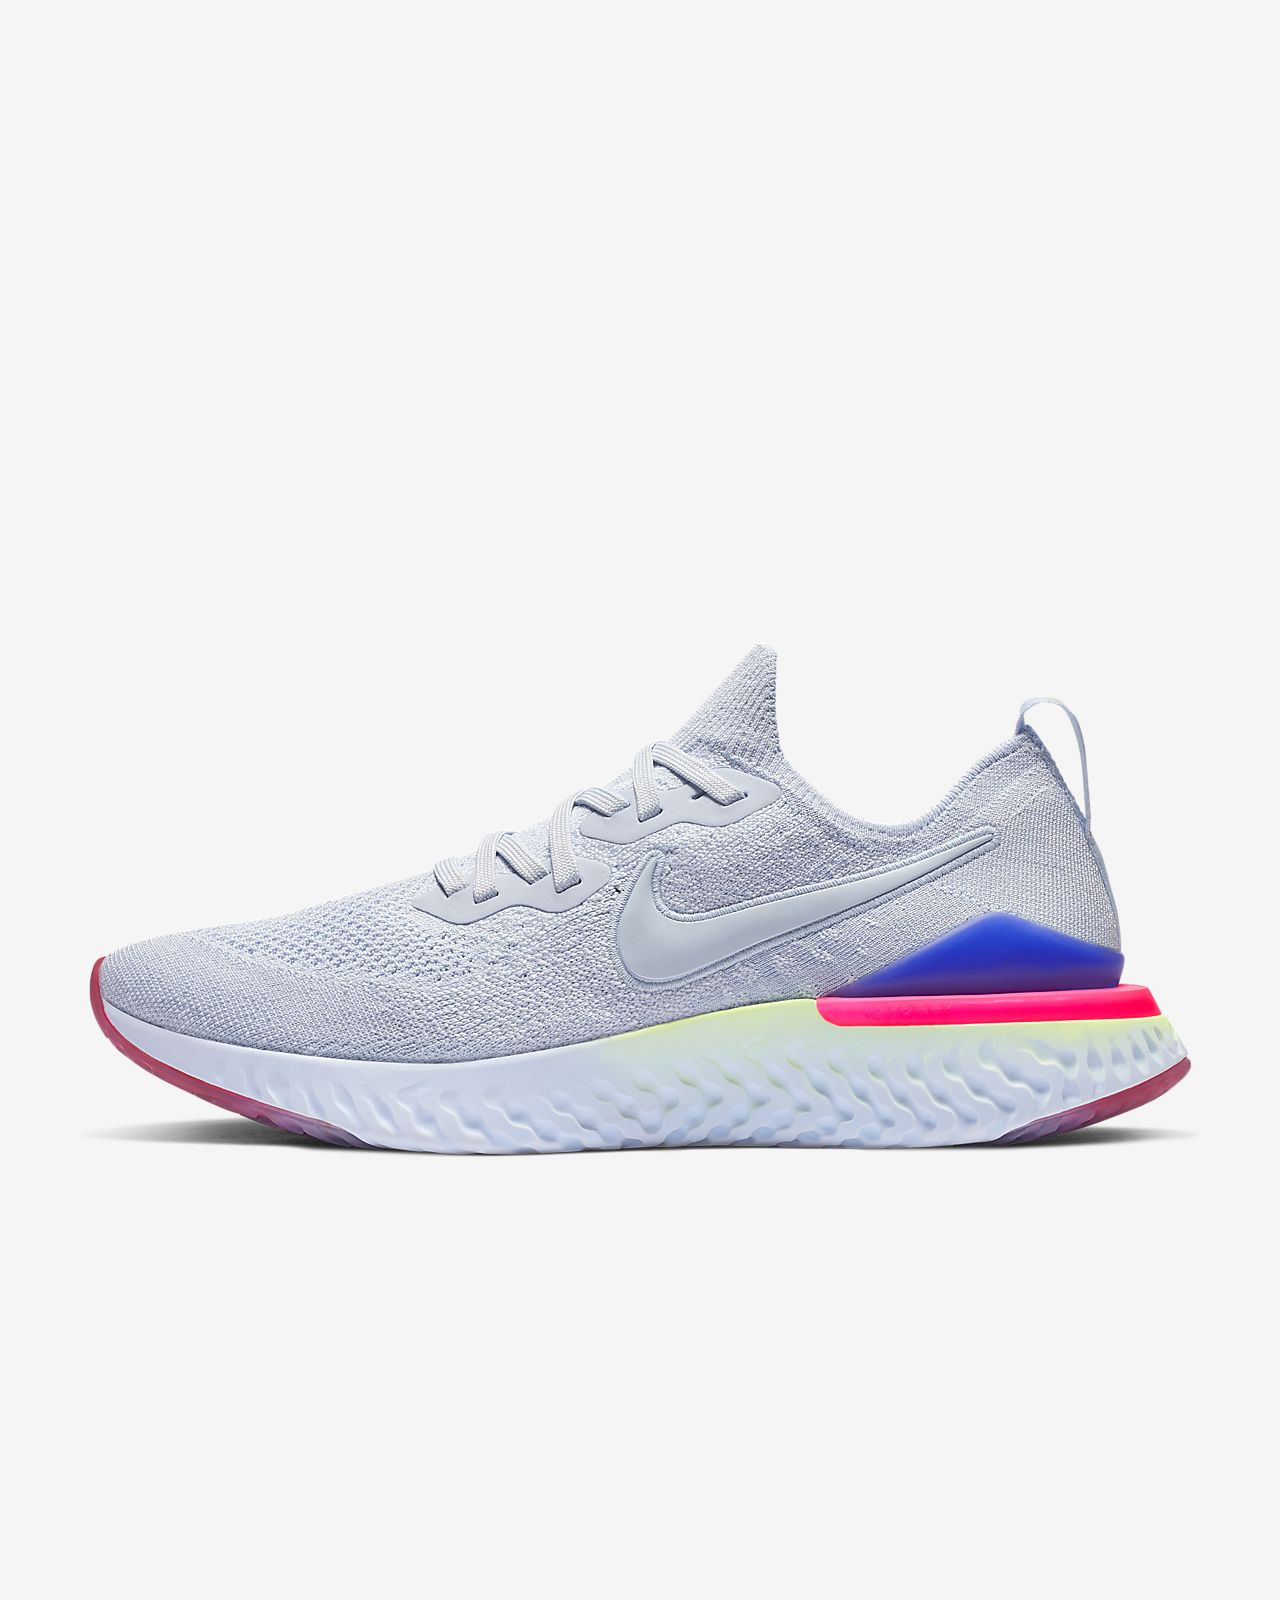 ca855657455e0 Nike Epic React Flyknit 2 Men s Running Shoe. Nike.com CH